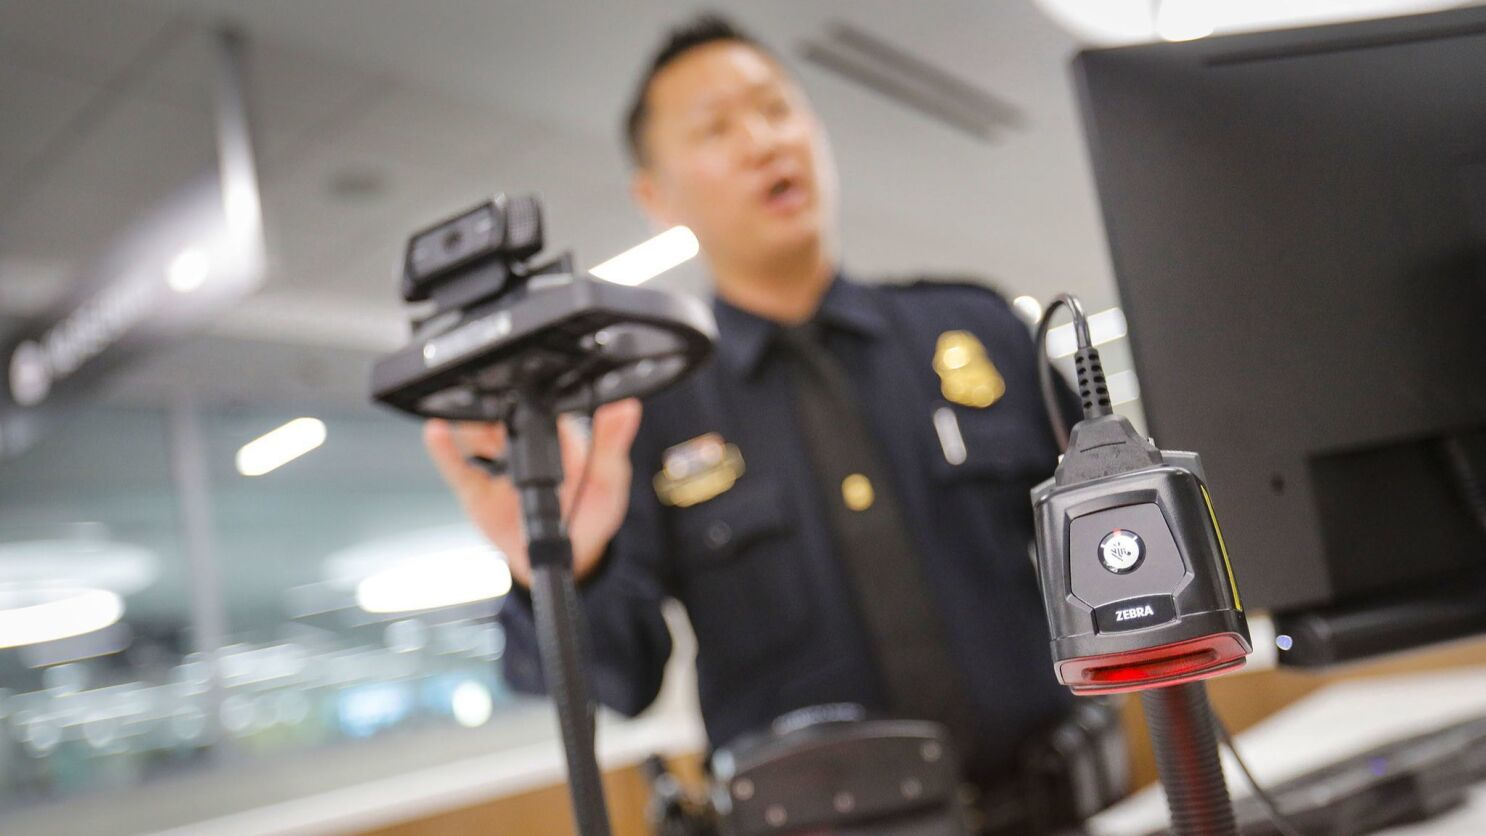 Facial recognition tech speeds up customs at new San Diego airport